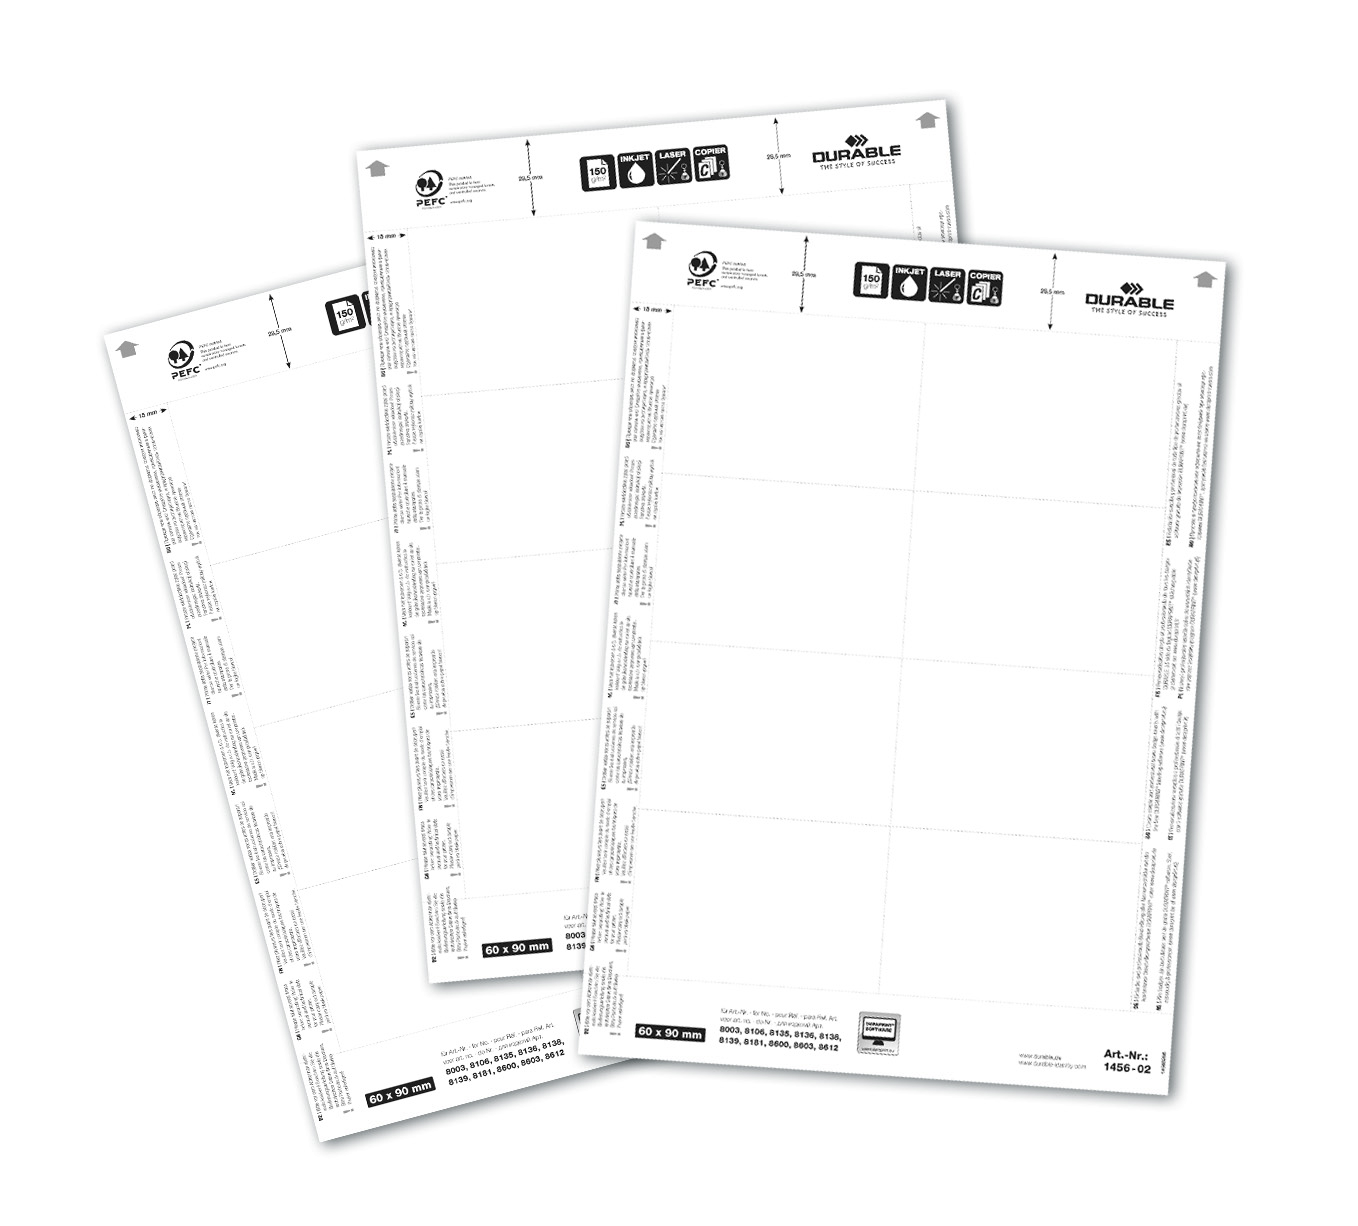 Compare prices for Durable Badgemaker 160 Inserts 60x90mm 145602 Pack of 160